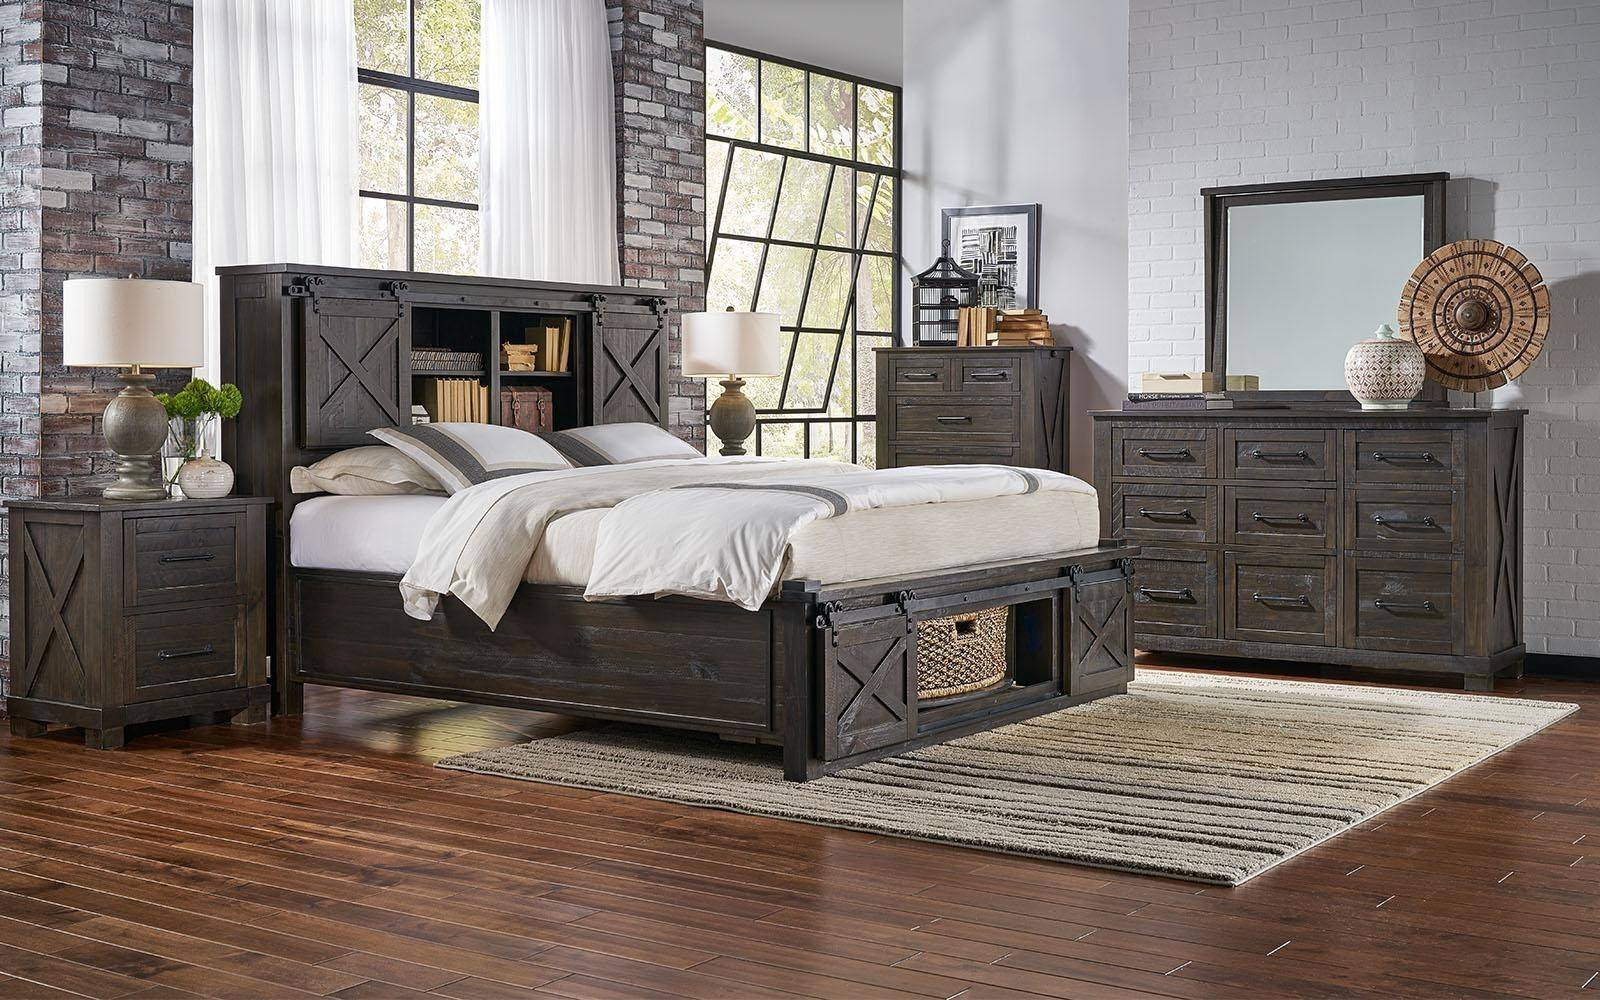 Rustic Pine Bedroom Furniture Lovely Rustic Queen Rotating Storage Bedroom Set 5pcs Suvcl5032 A